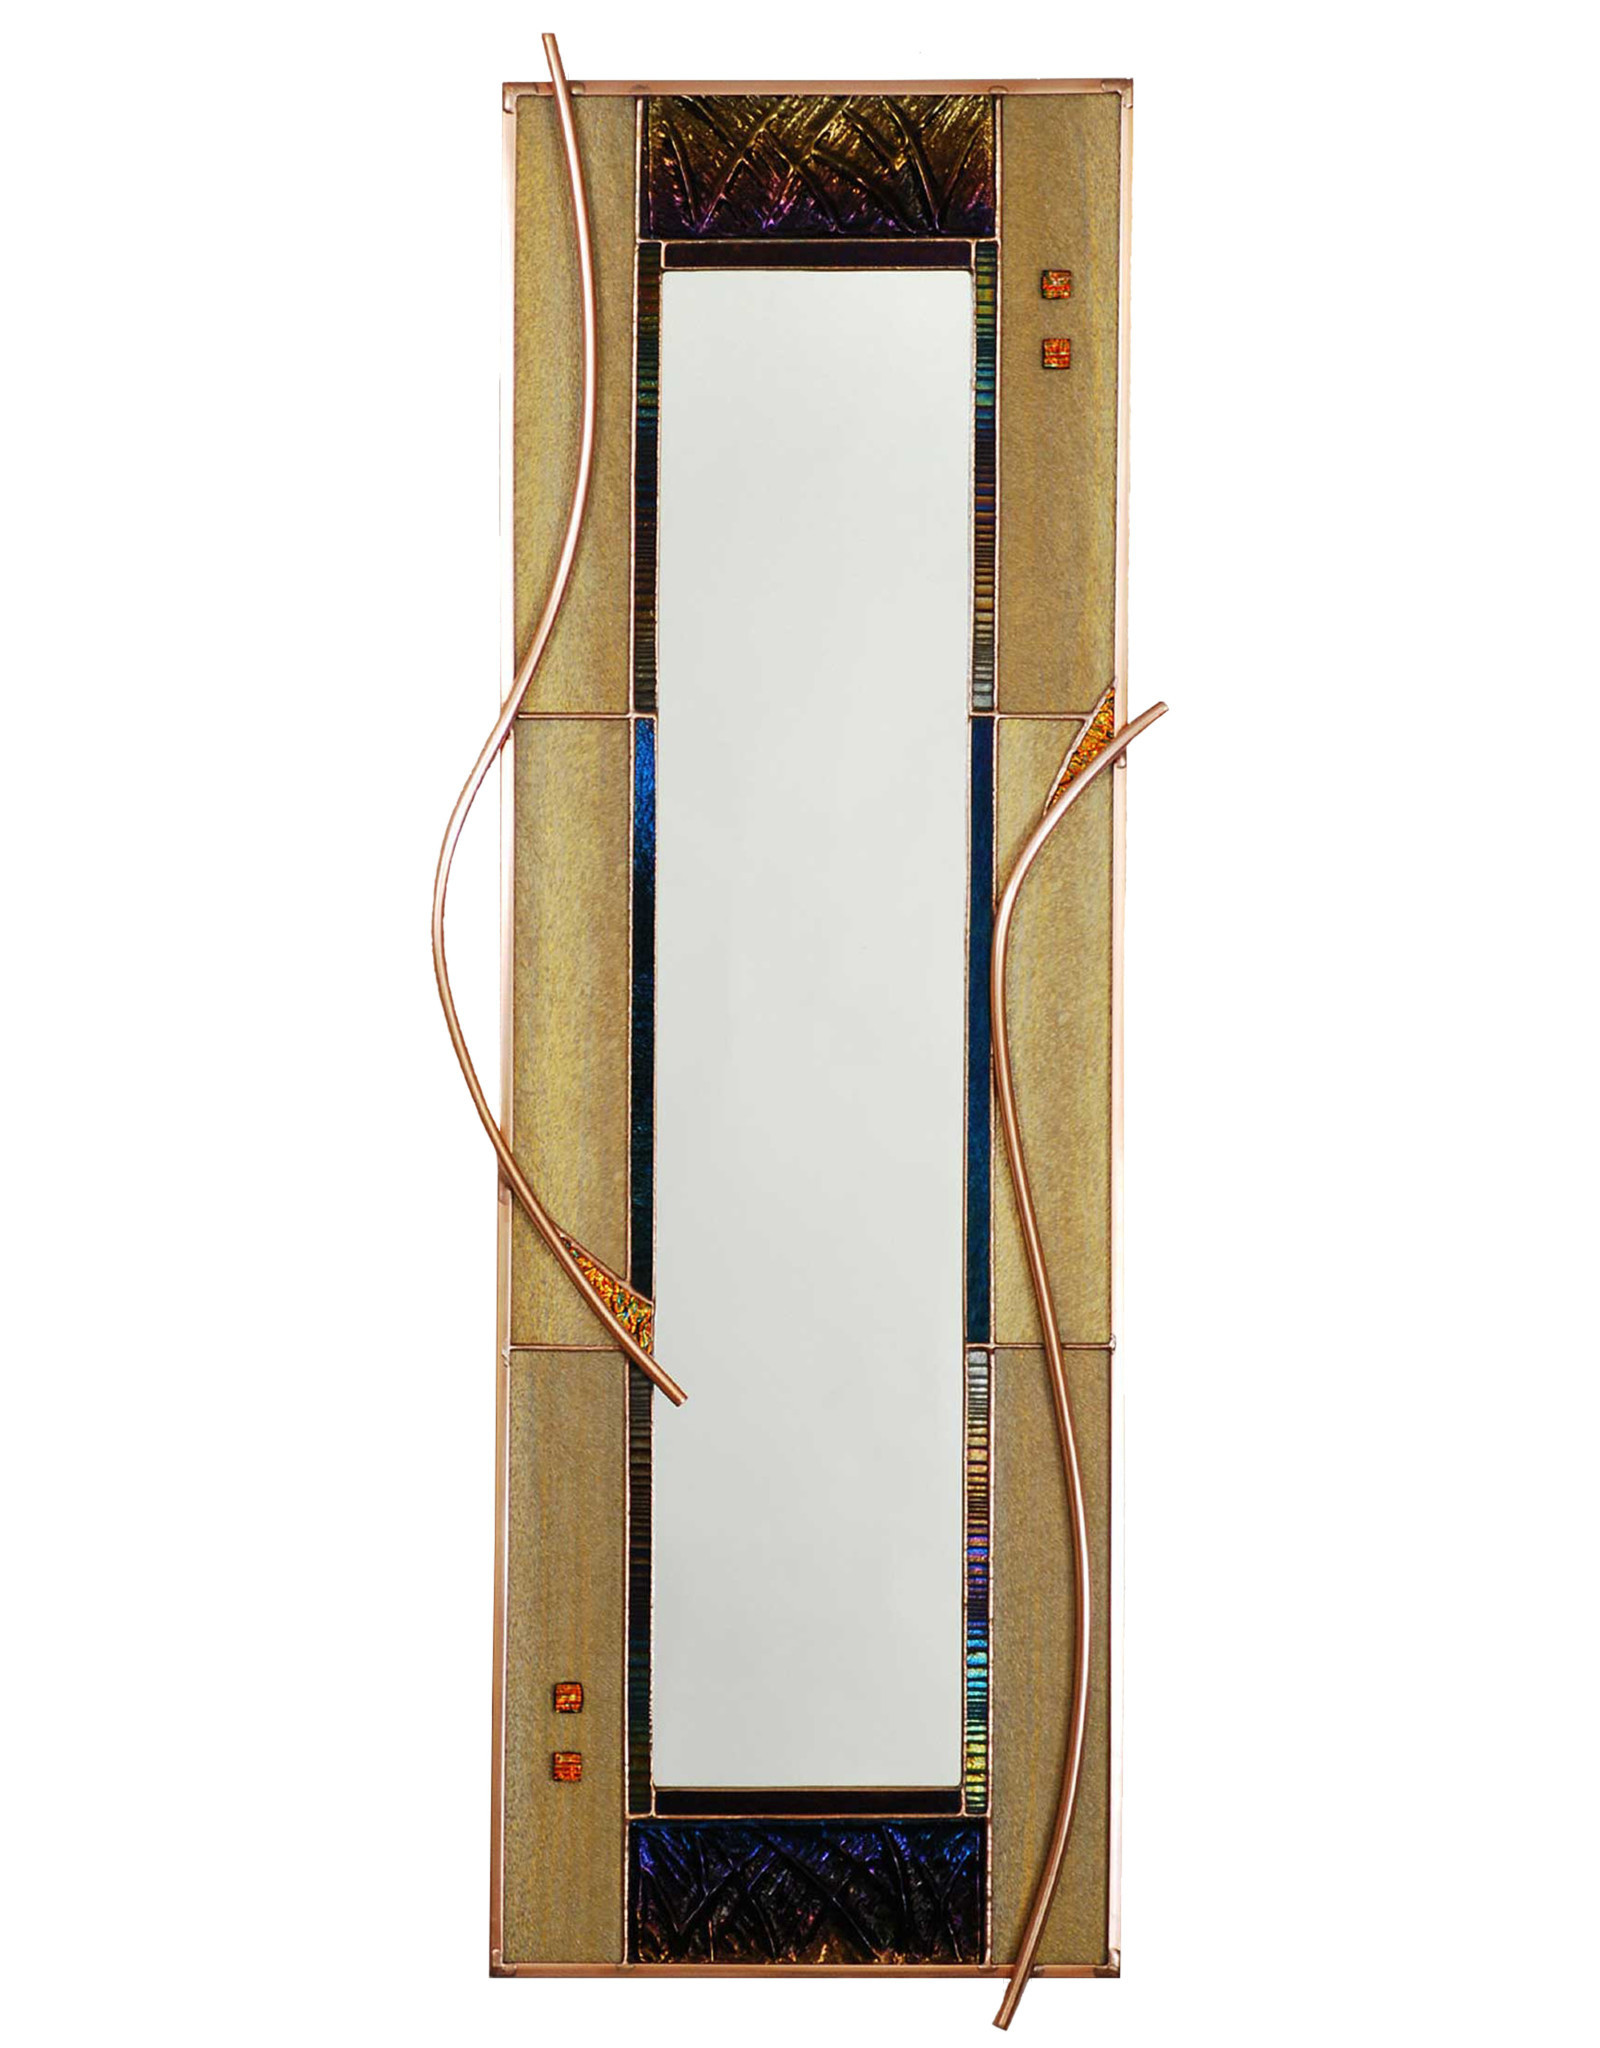 LIGHT IMAGES GLASS PAPYRUS MIRROR